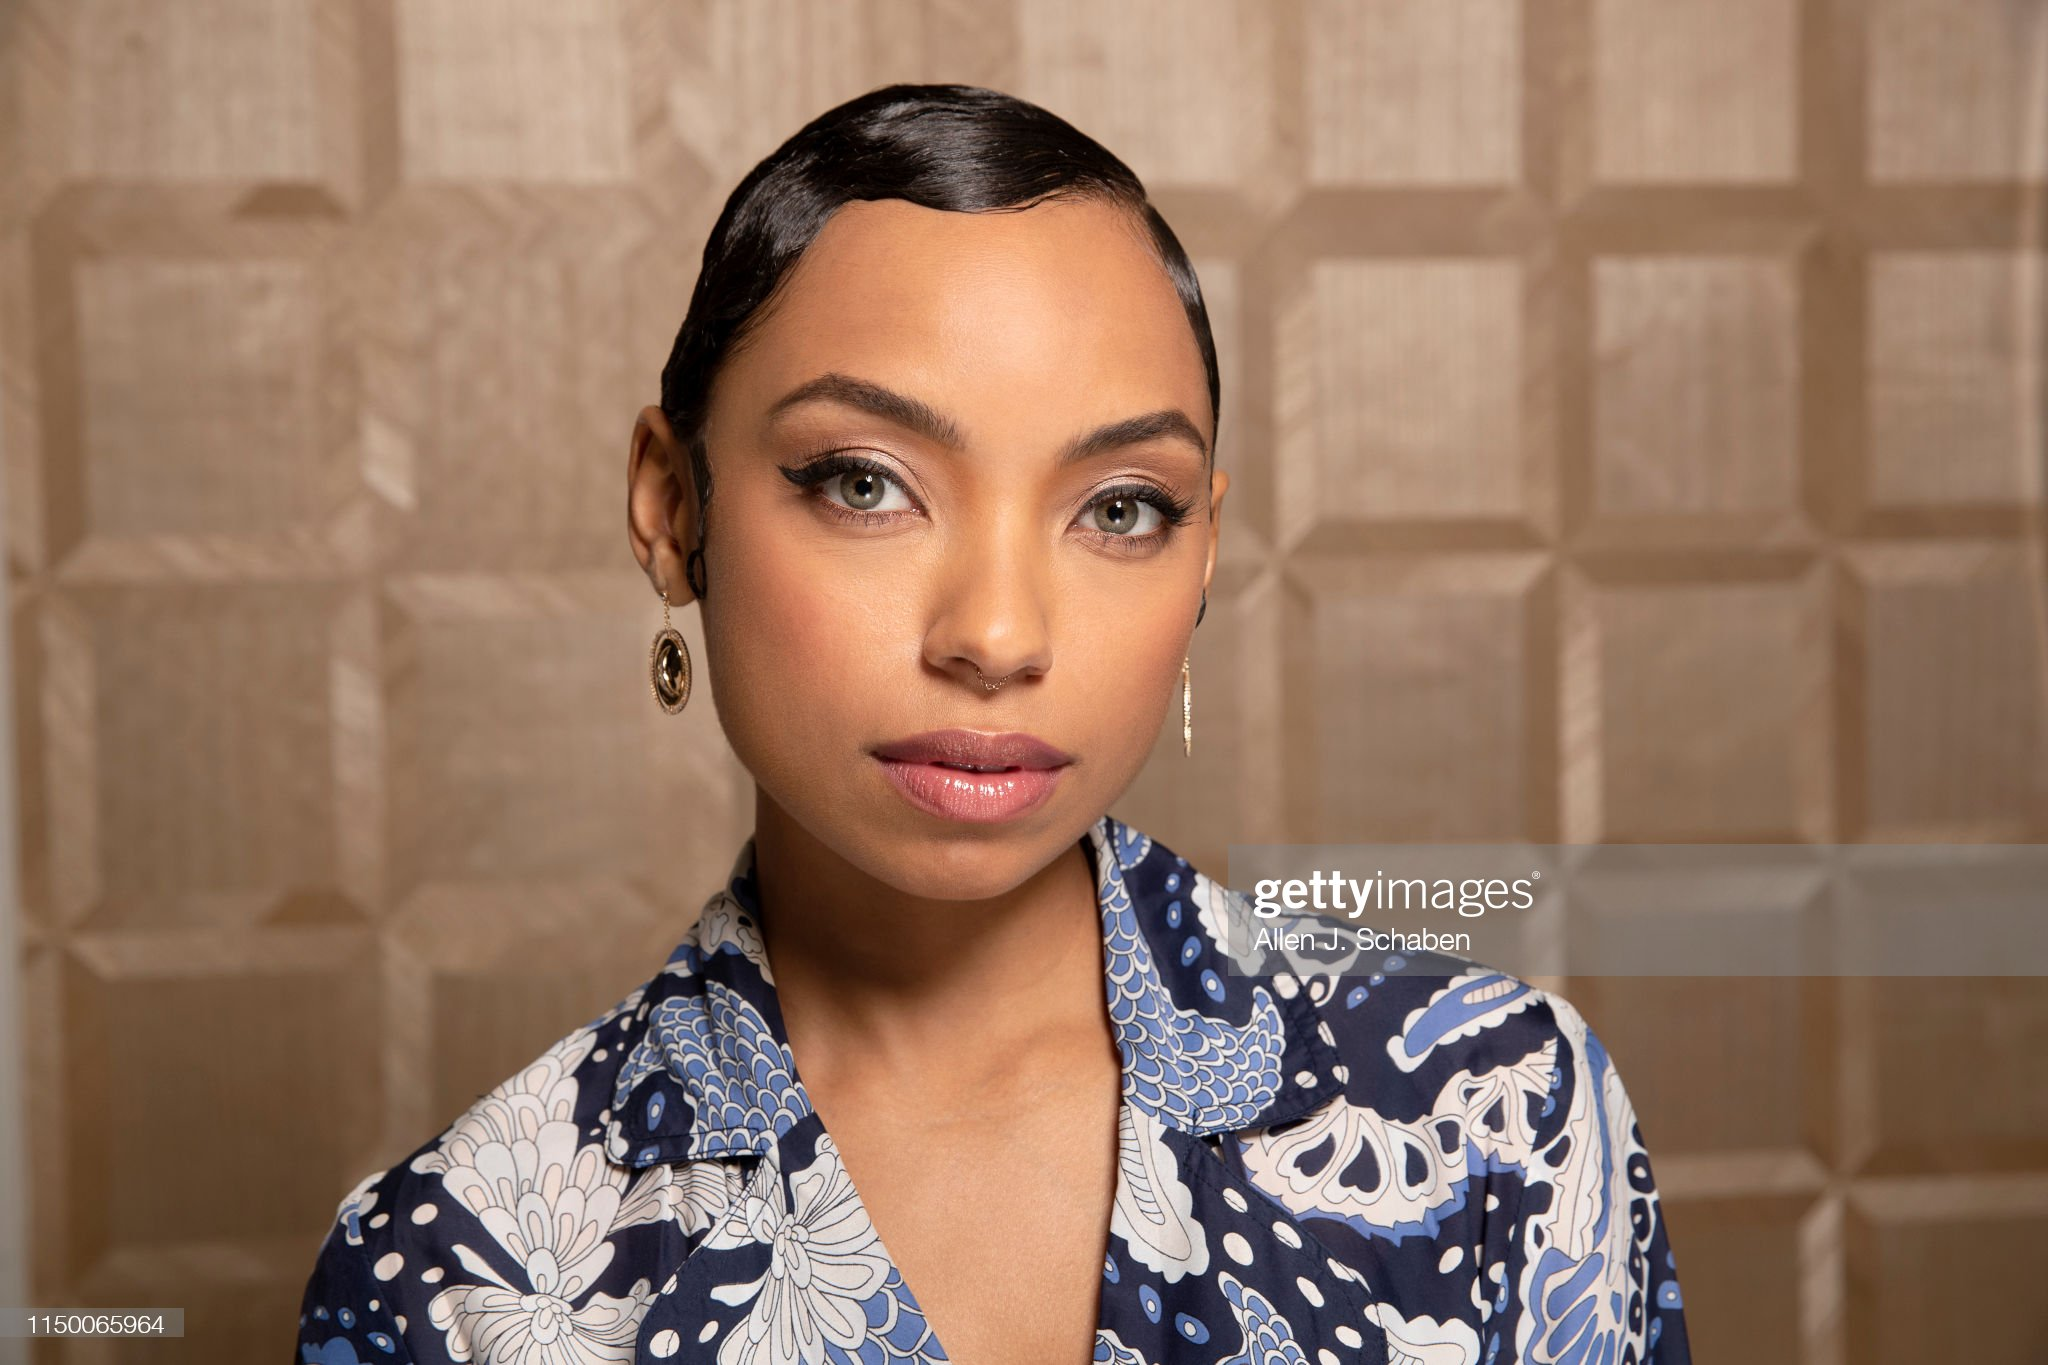 Ojos verdes - Famosas y famosos con los ojos de color VERDE Actress-logan-browning-is-photographed-for-los-angeles-times-on-may-picture-id1150065964?s=2048x2048